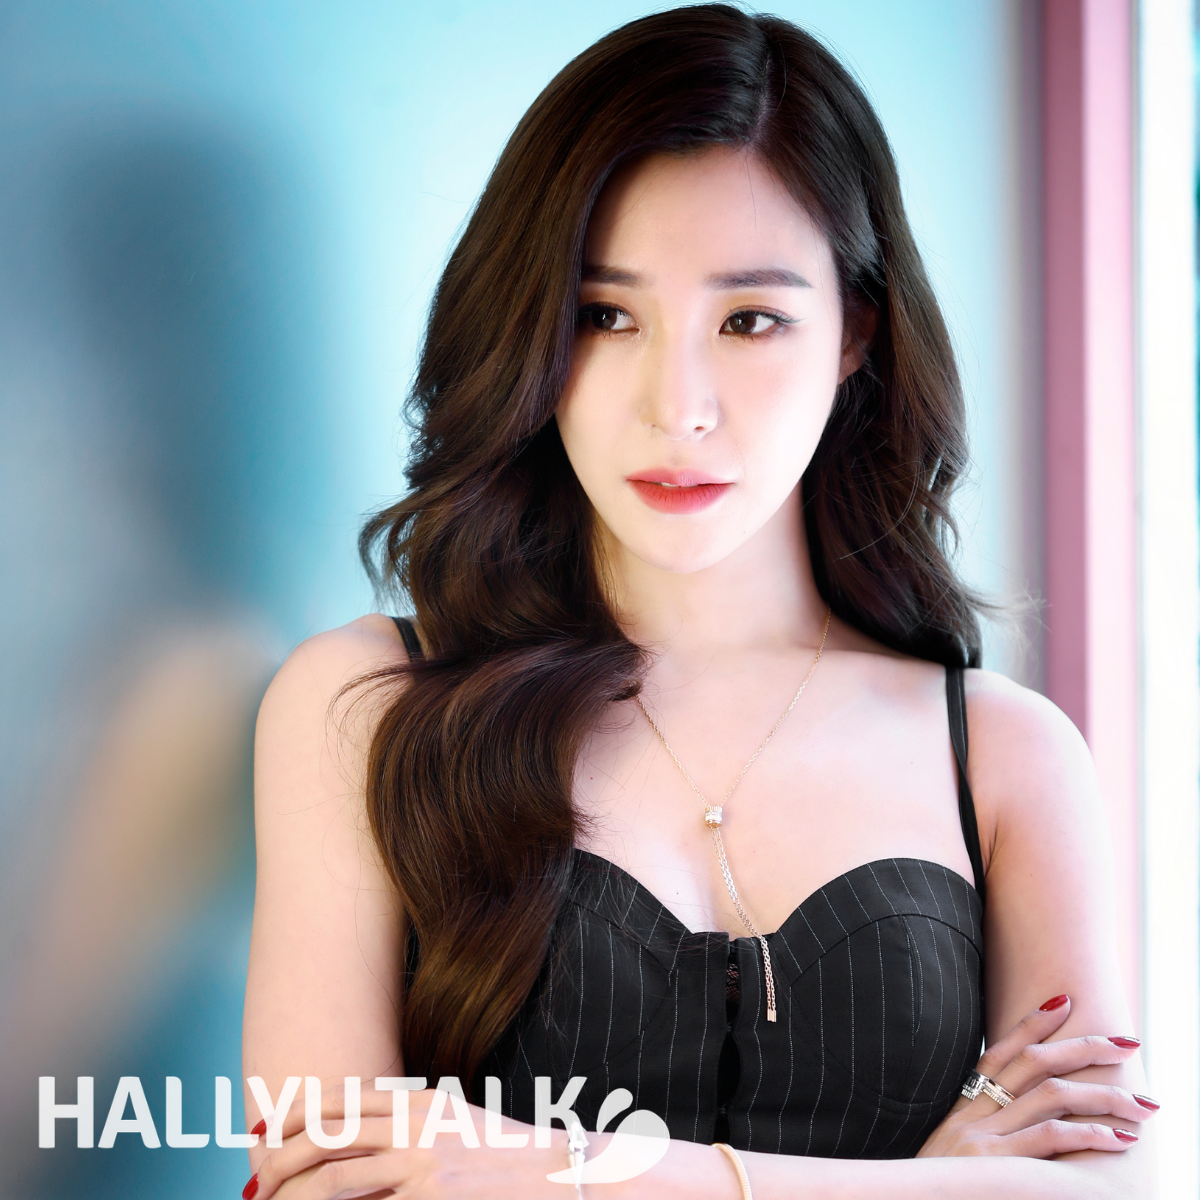 PHOTOS: 7 times Girls' Generation Tiffany floored us with her epic fashion sense